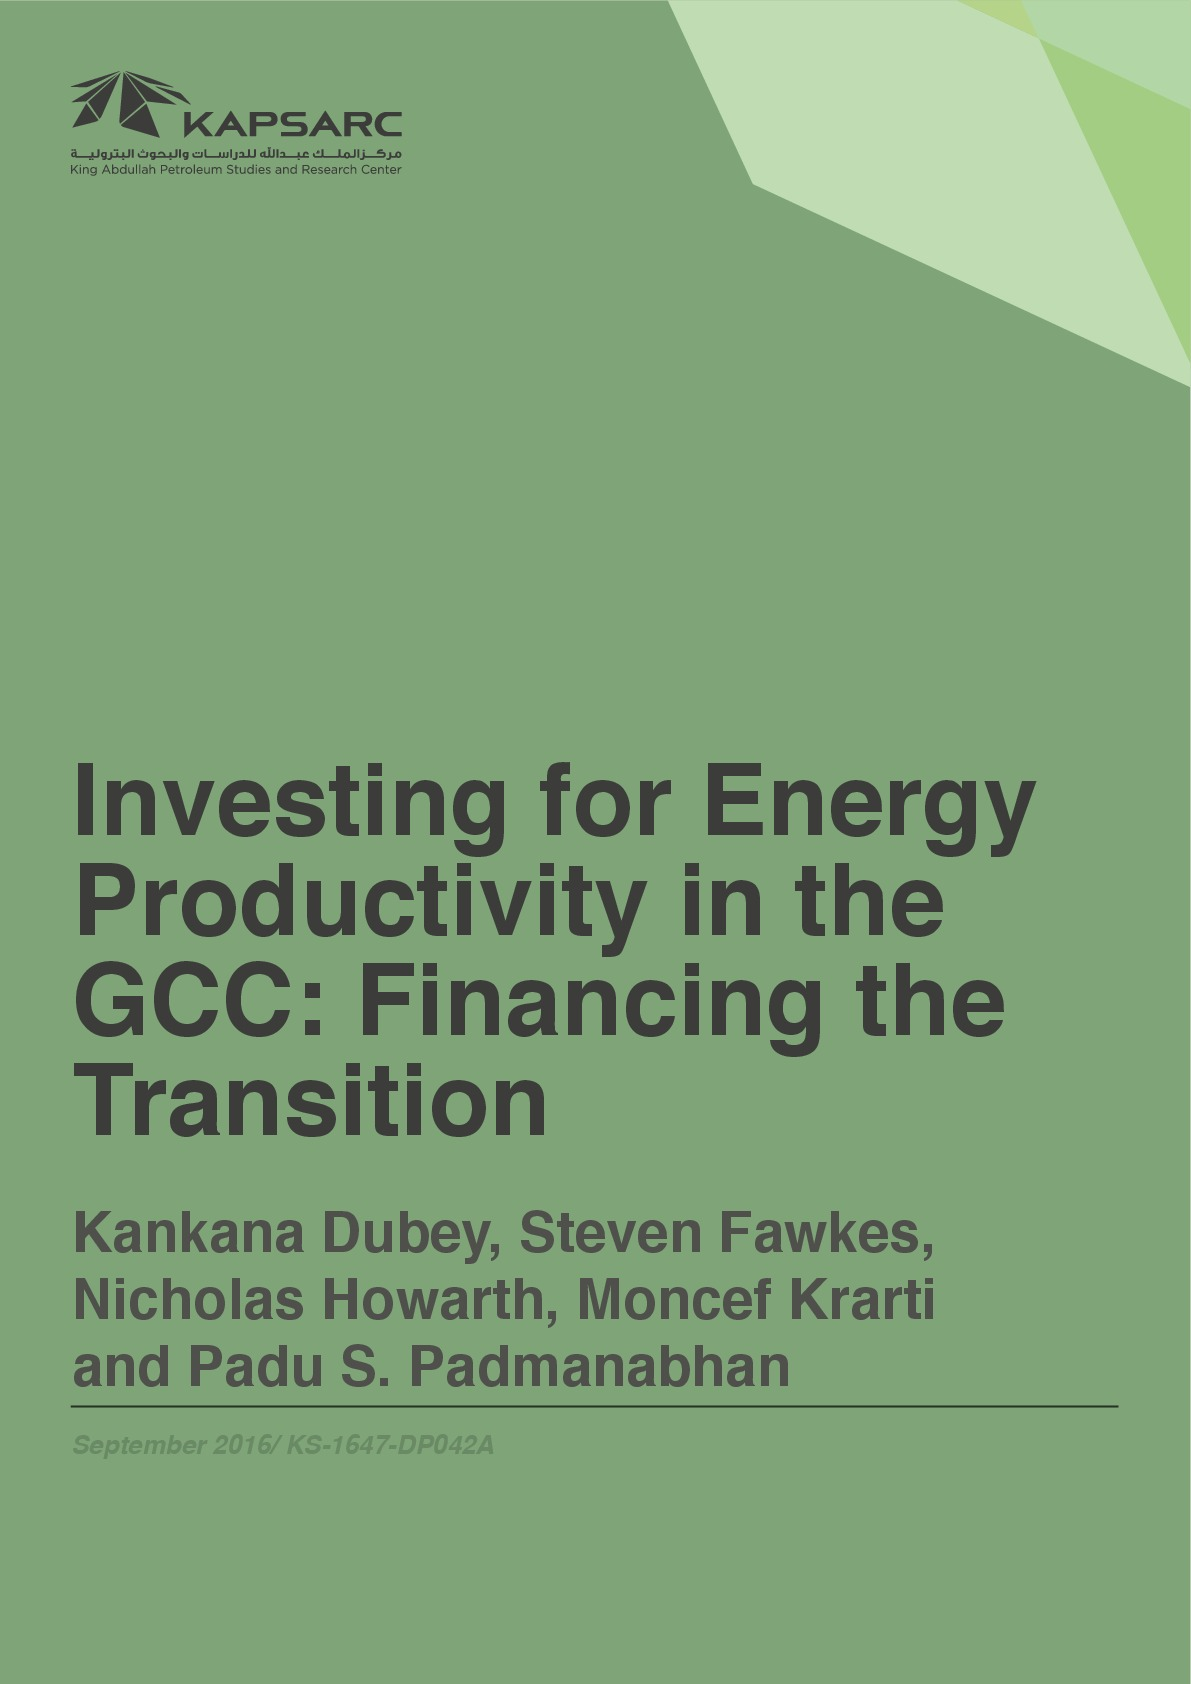 Investing for Energy Productivity in the GCC – Financing the Transition